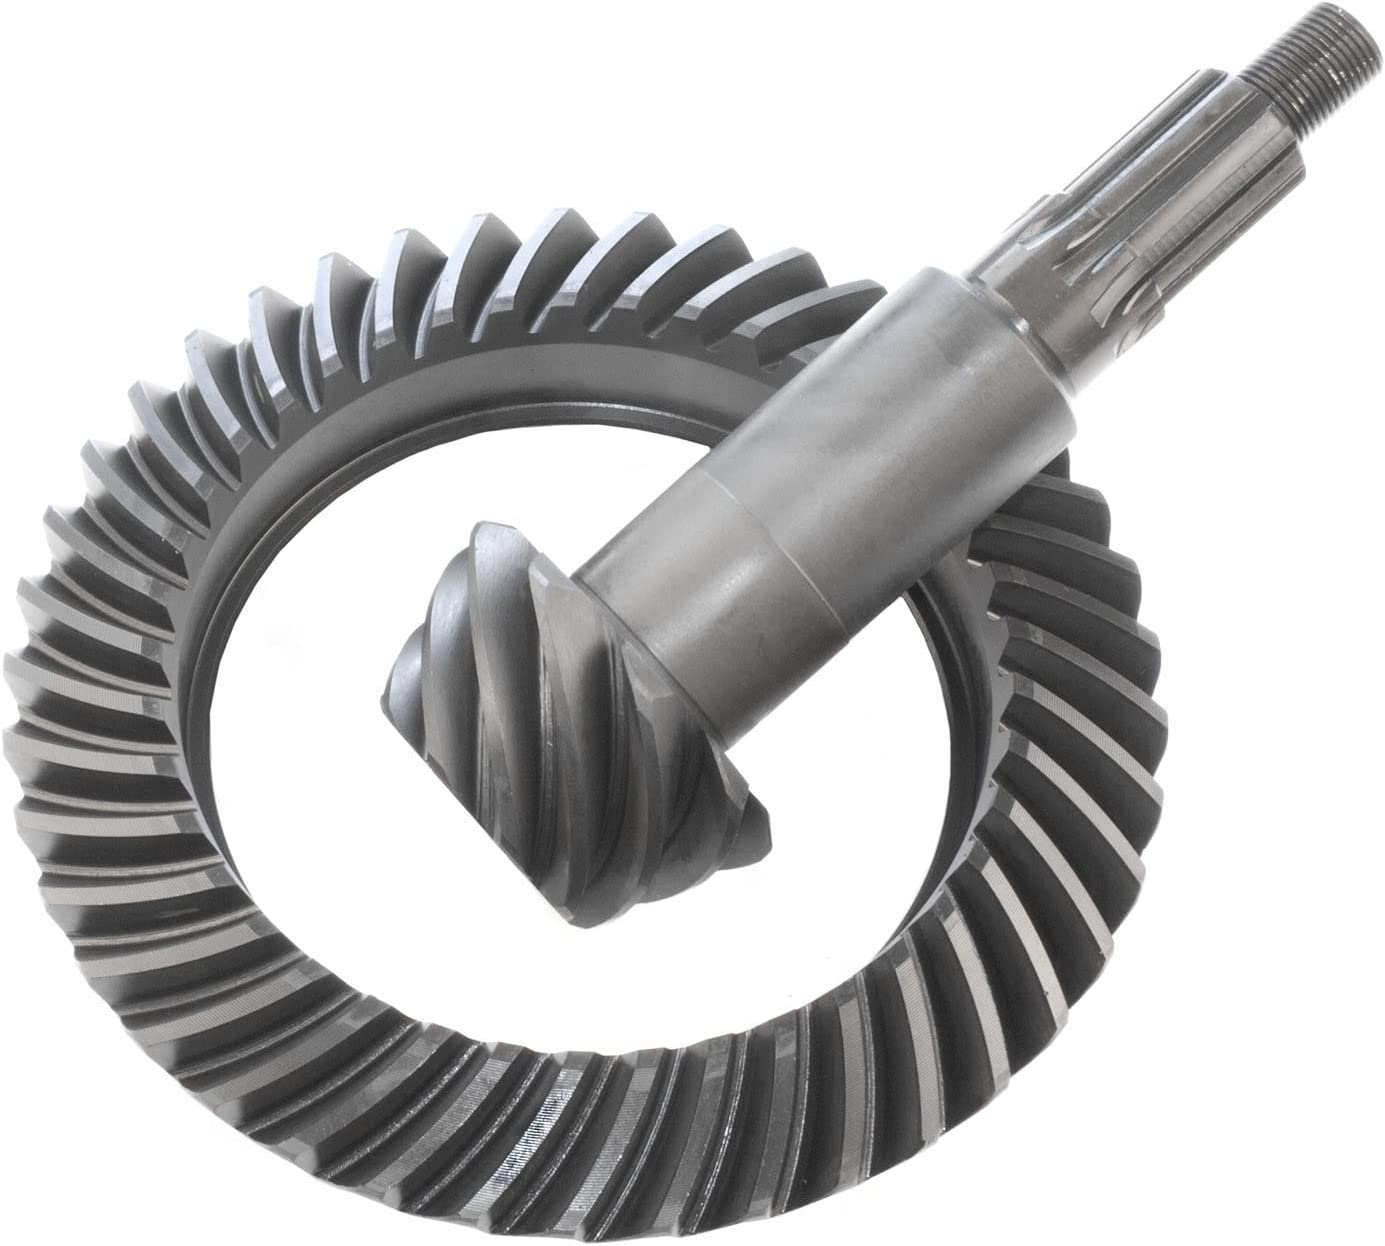 Richmond Gear 69-0047-1 Ring and Pinion Chrysler 8.75 4.57 Early 1 1 Pack